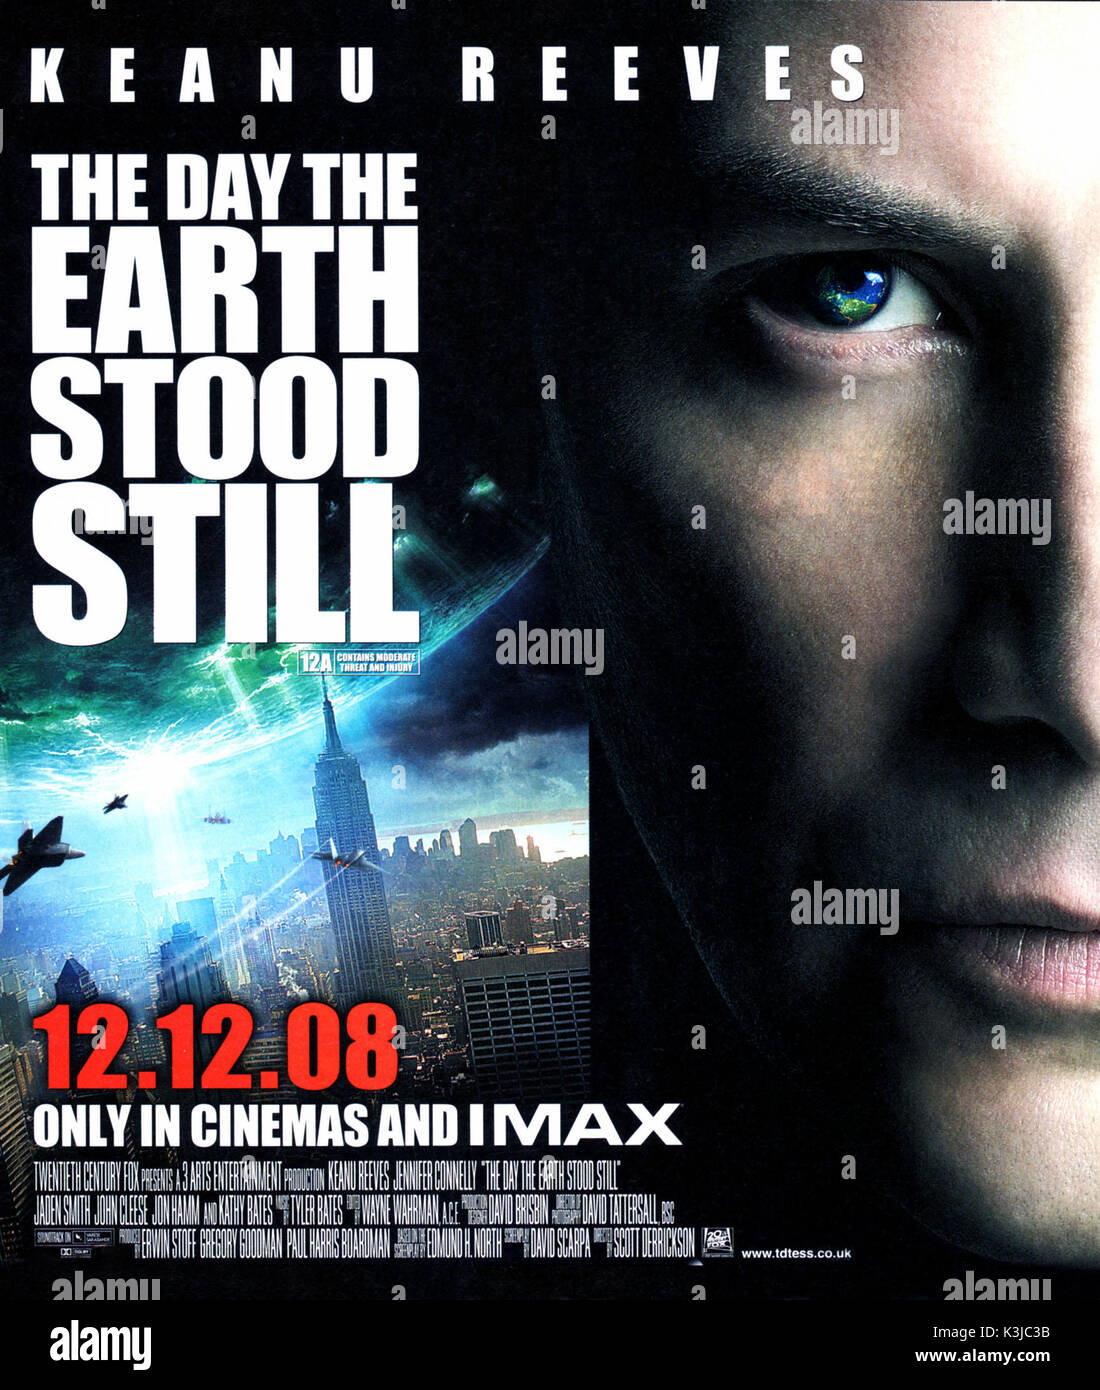 The Day The Earth Stood Still The Day The Earth Stood Still Stock Photo Alamy